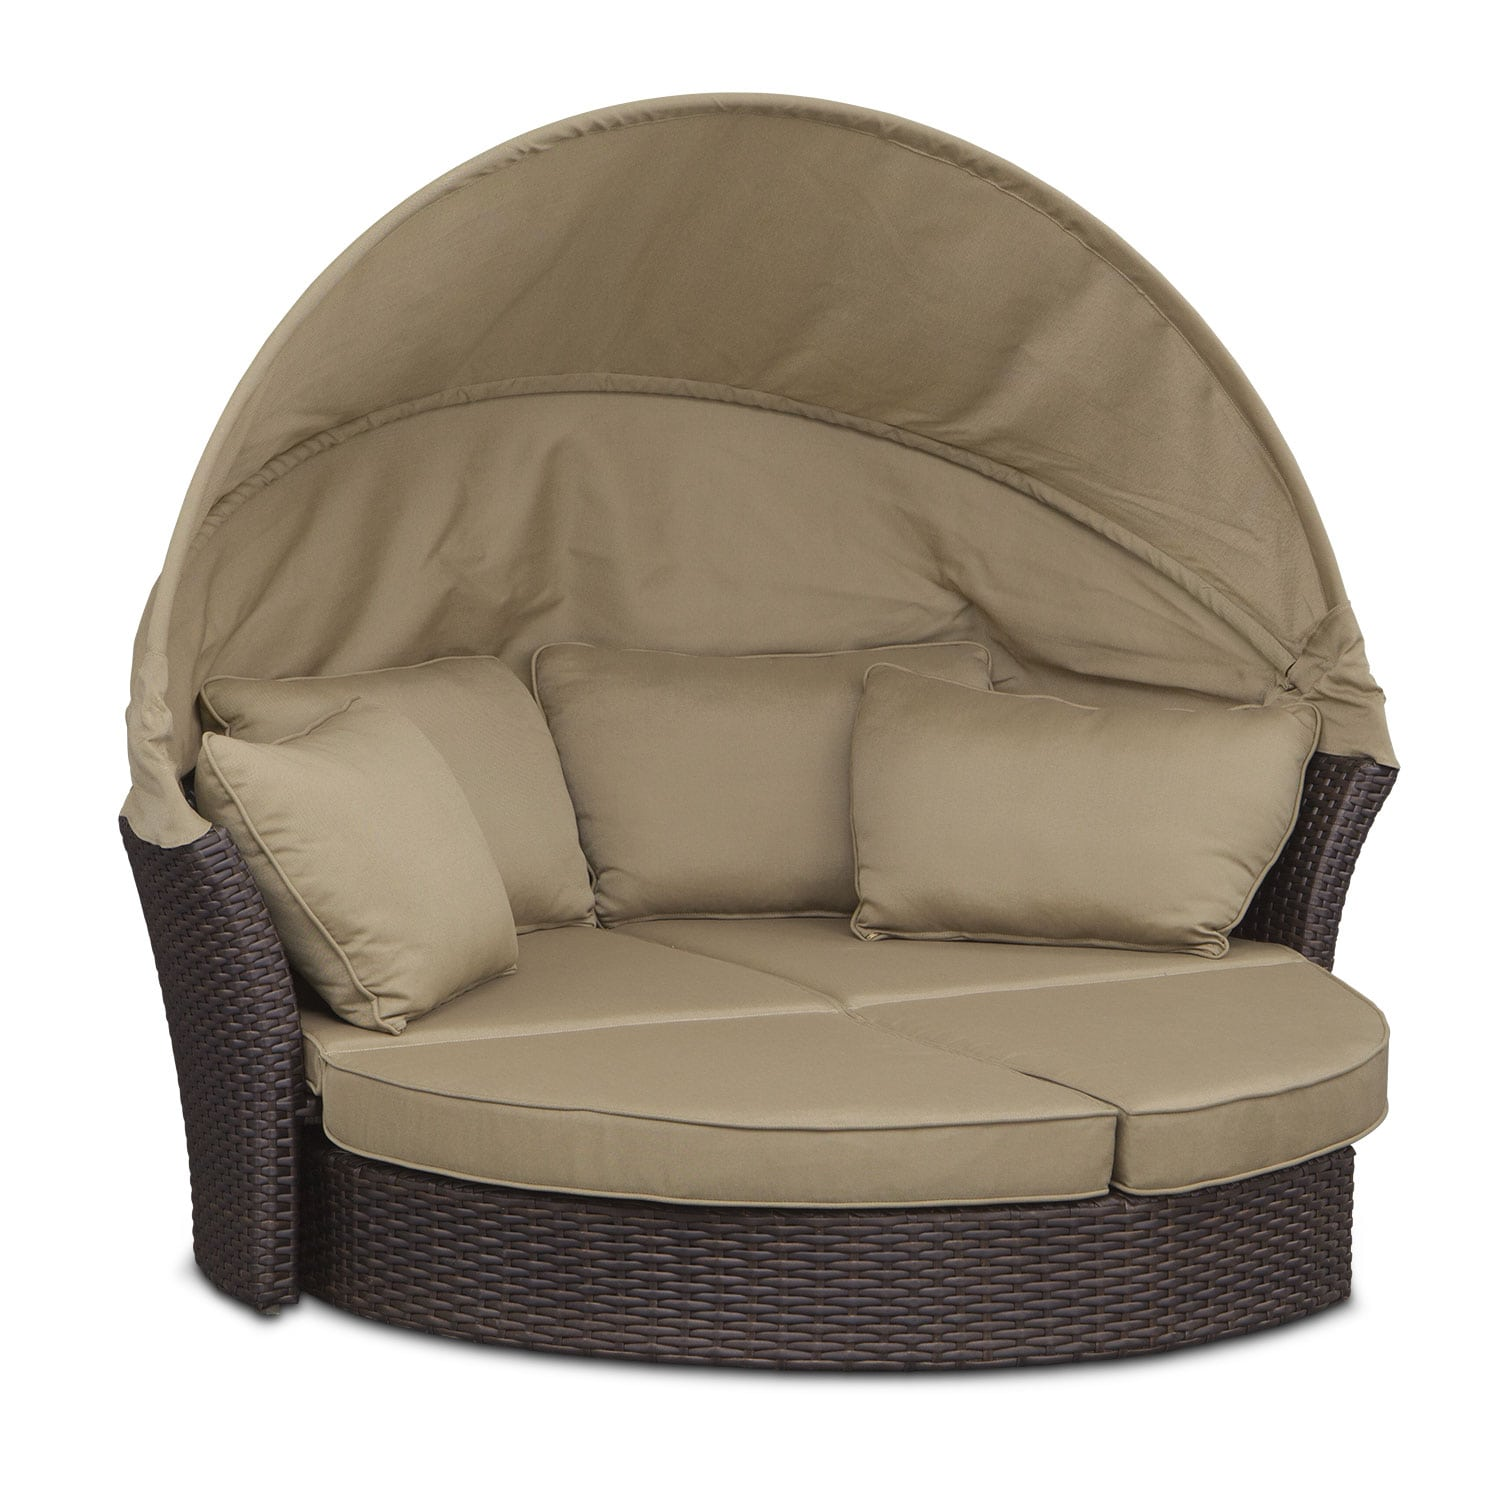 Maui Outdoor Sunbed - Brown